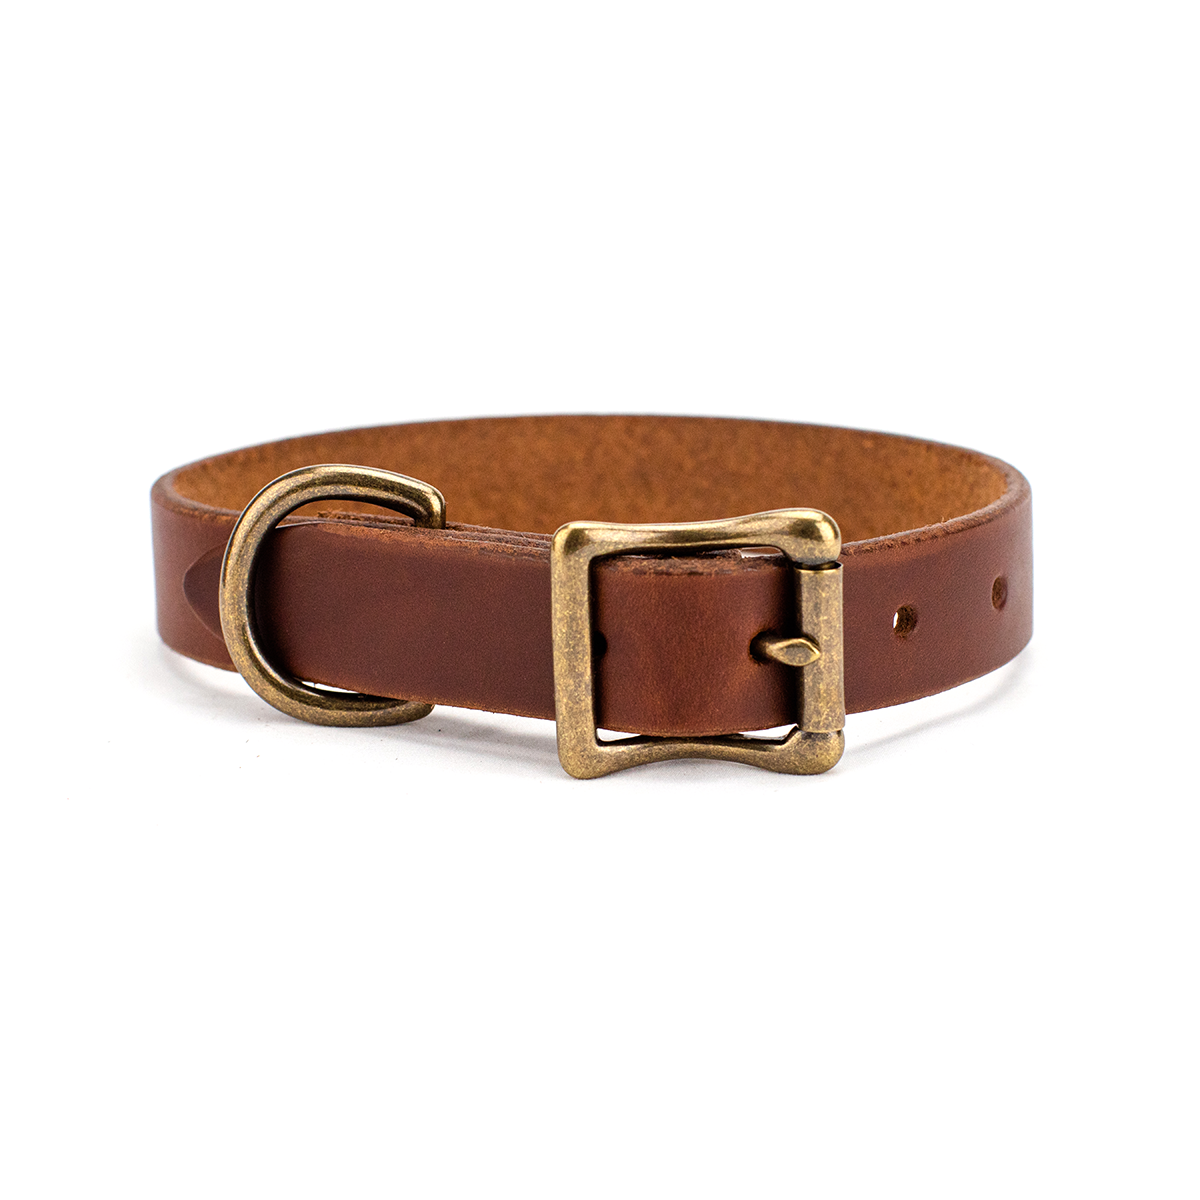 The Classic Leather Dog Collar Walnut